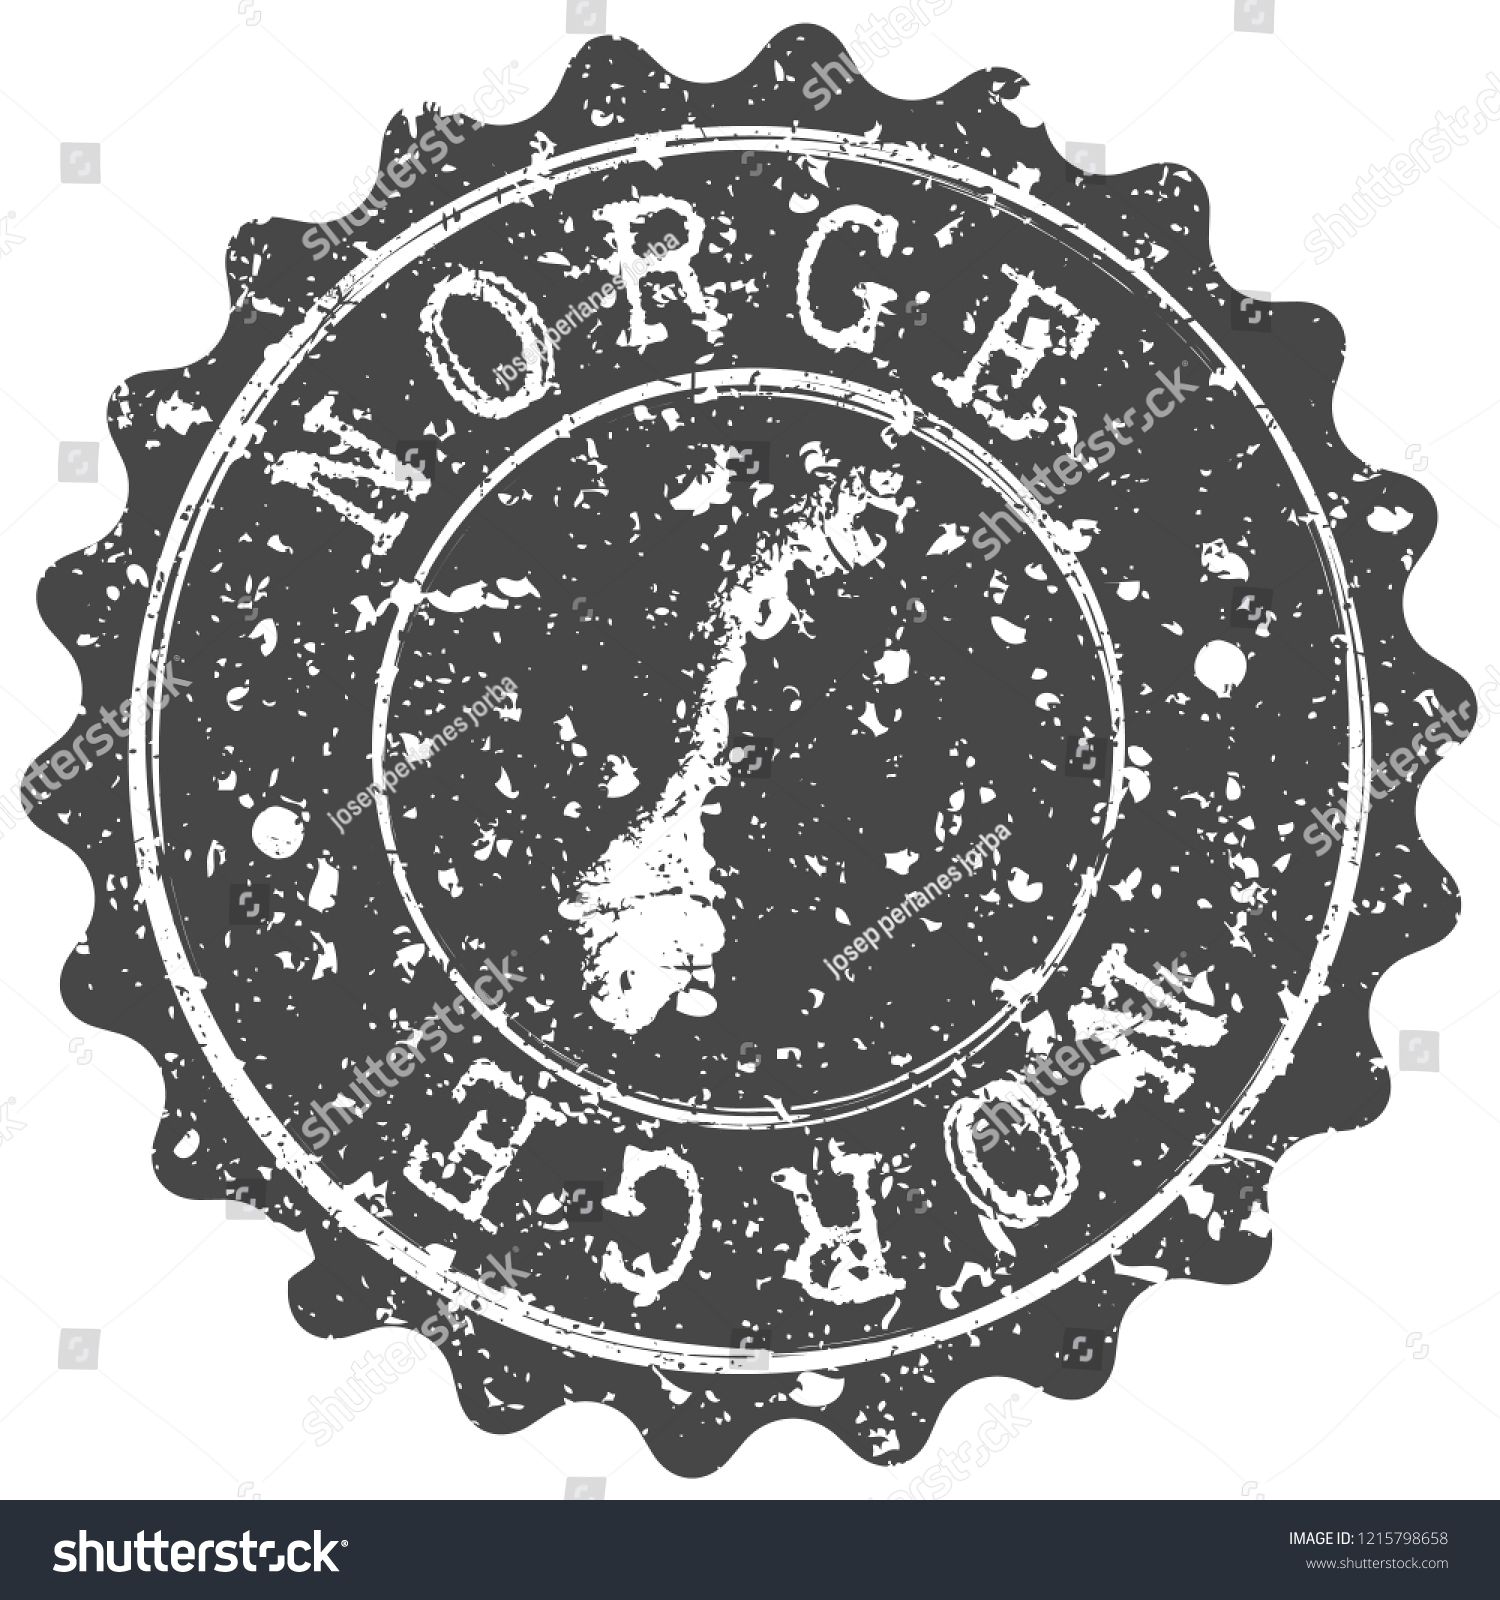 Norway Silhouette Map Postal Passport Stamp Round Vector Icon